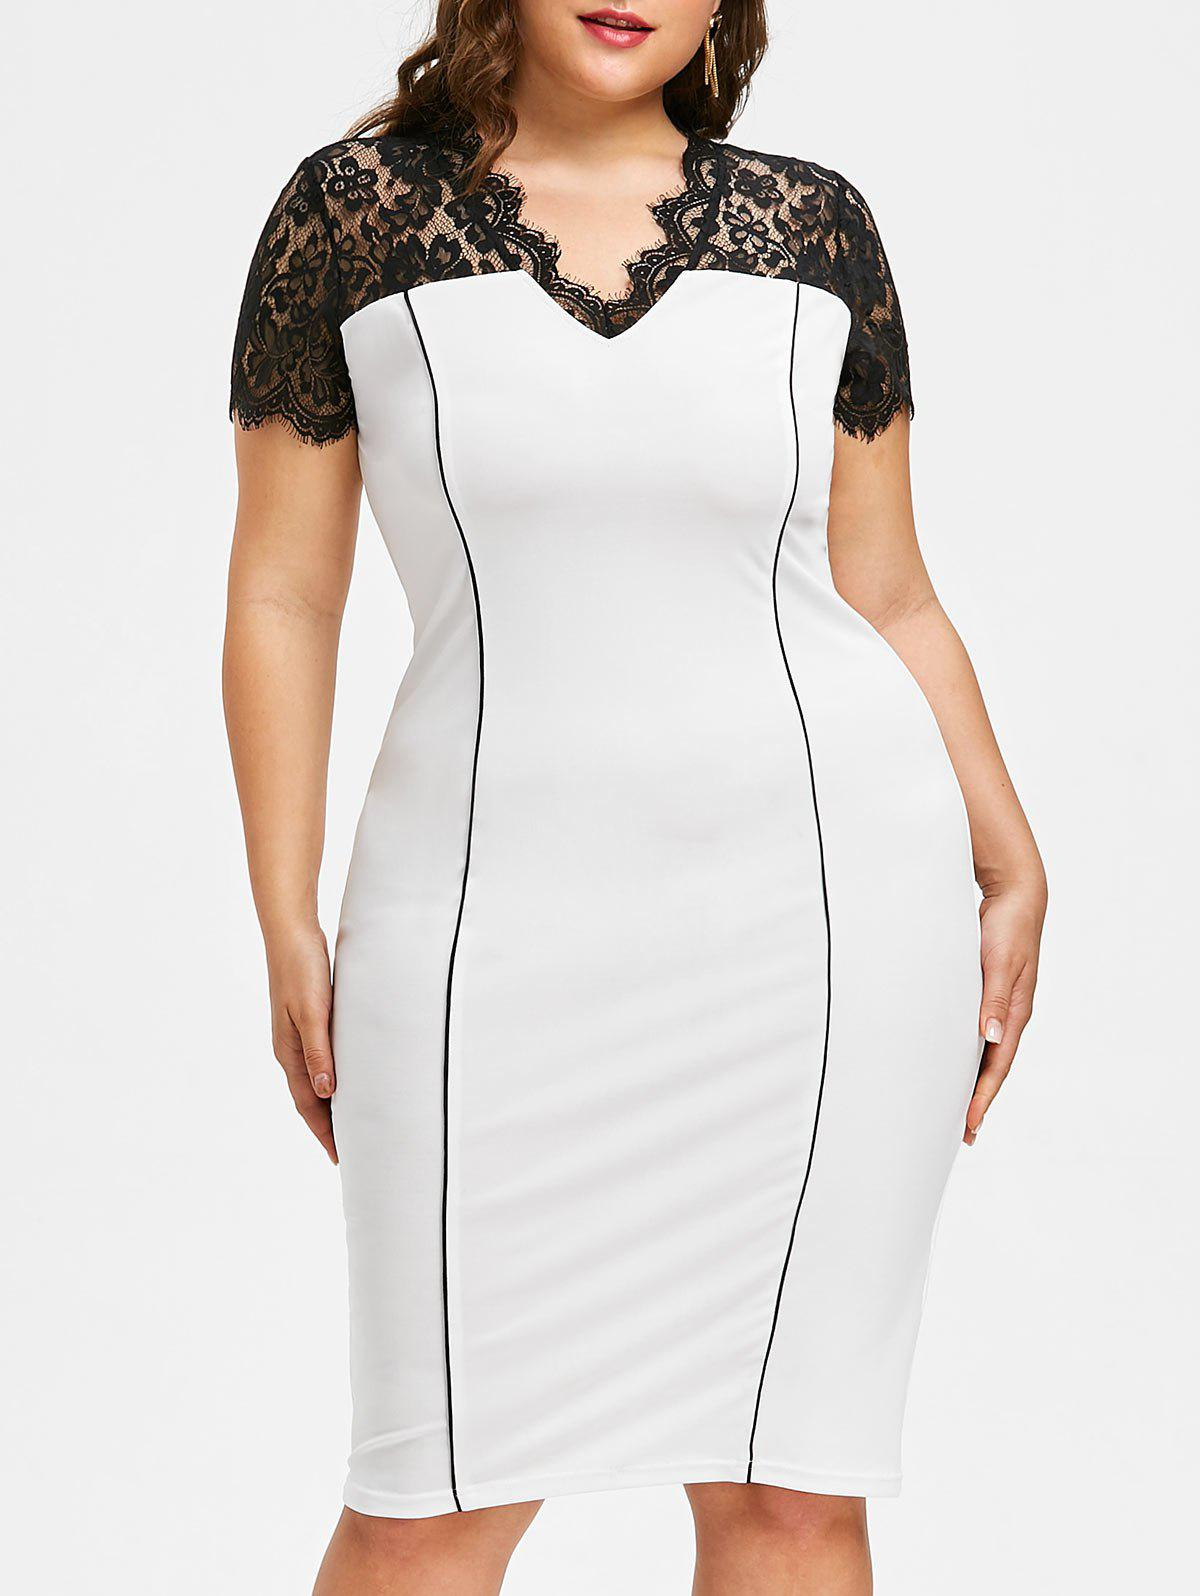 Store Plus Size Work Sheath Dress with Lace Detail